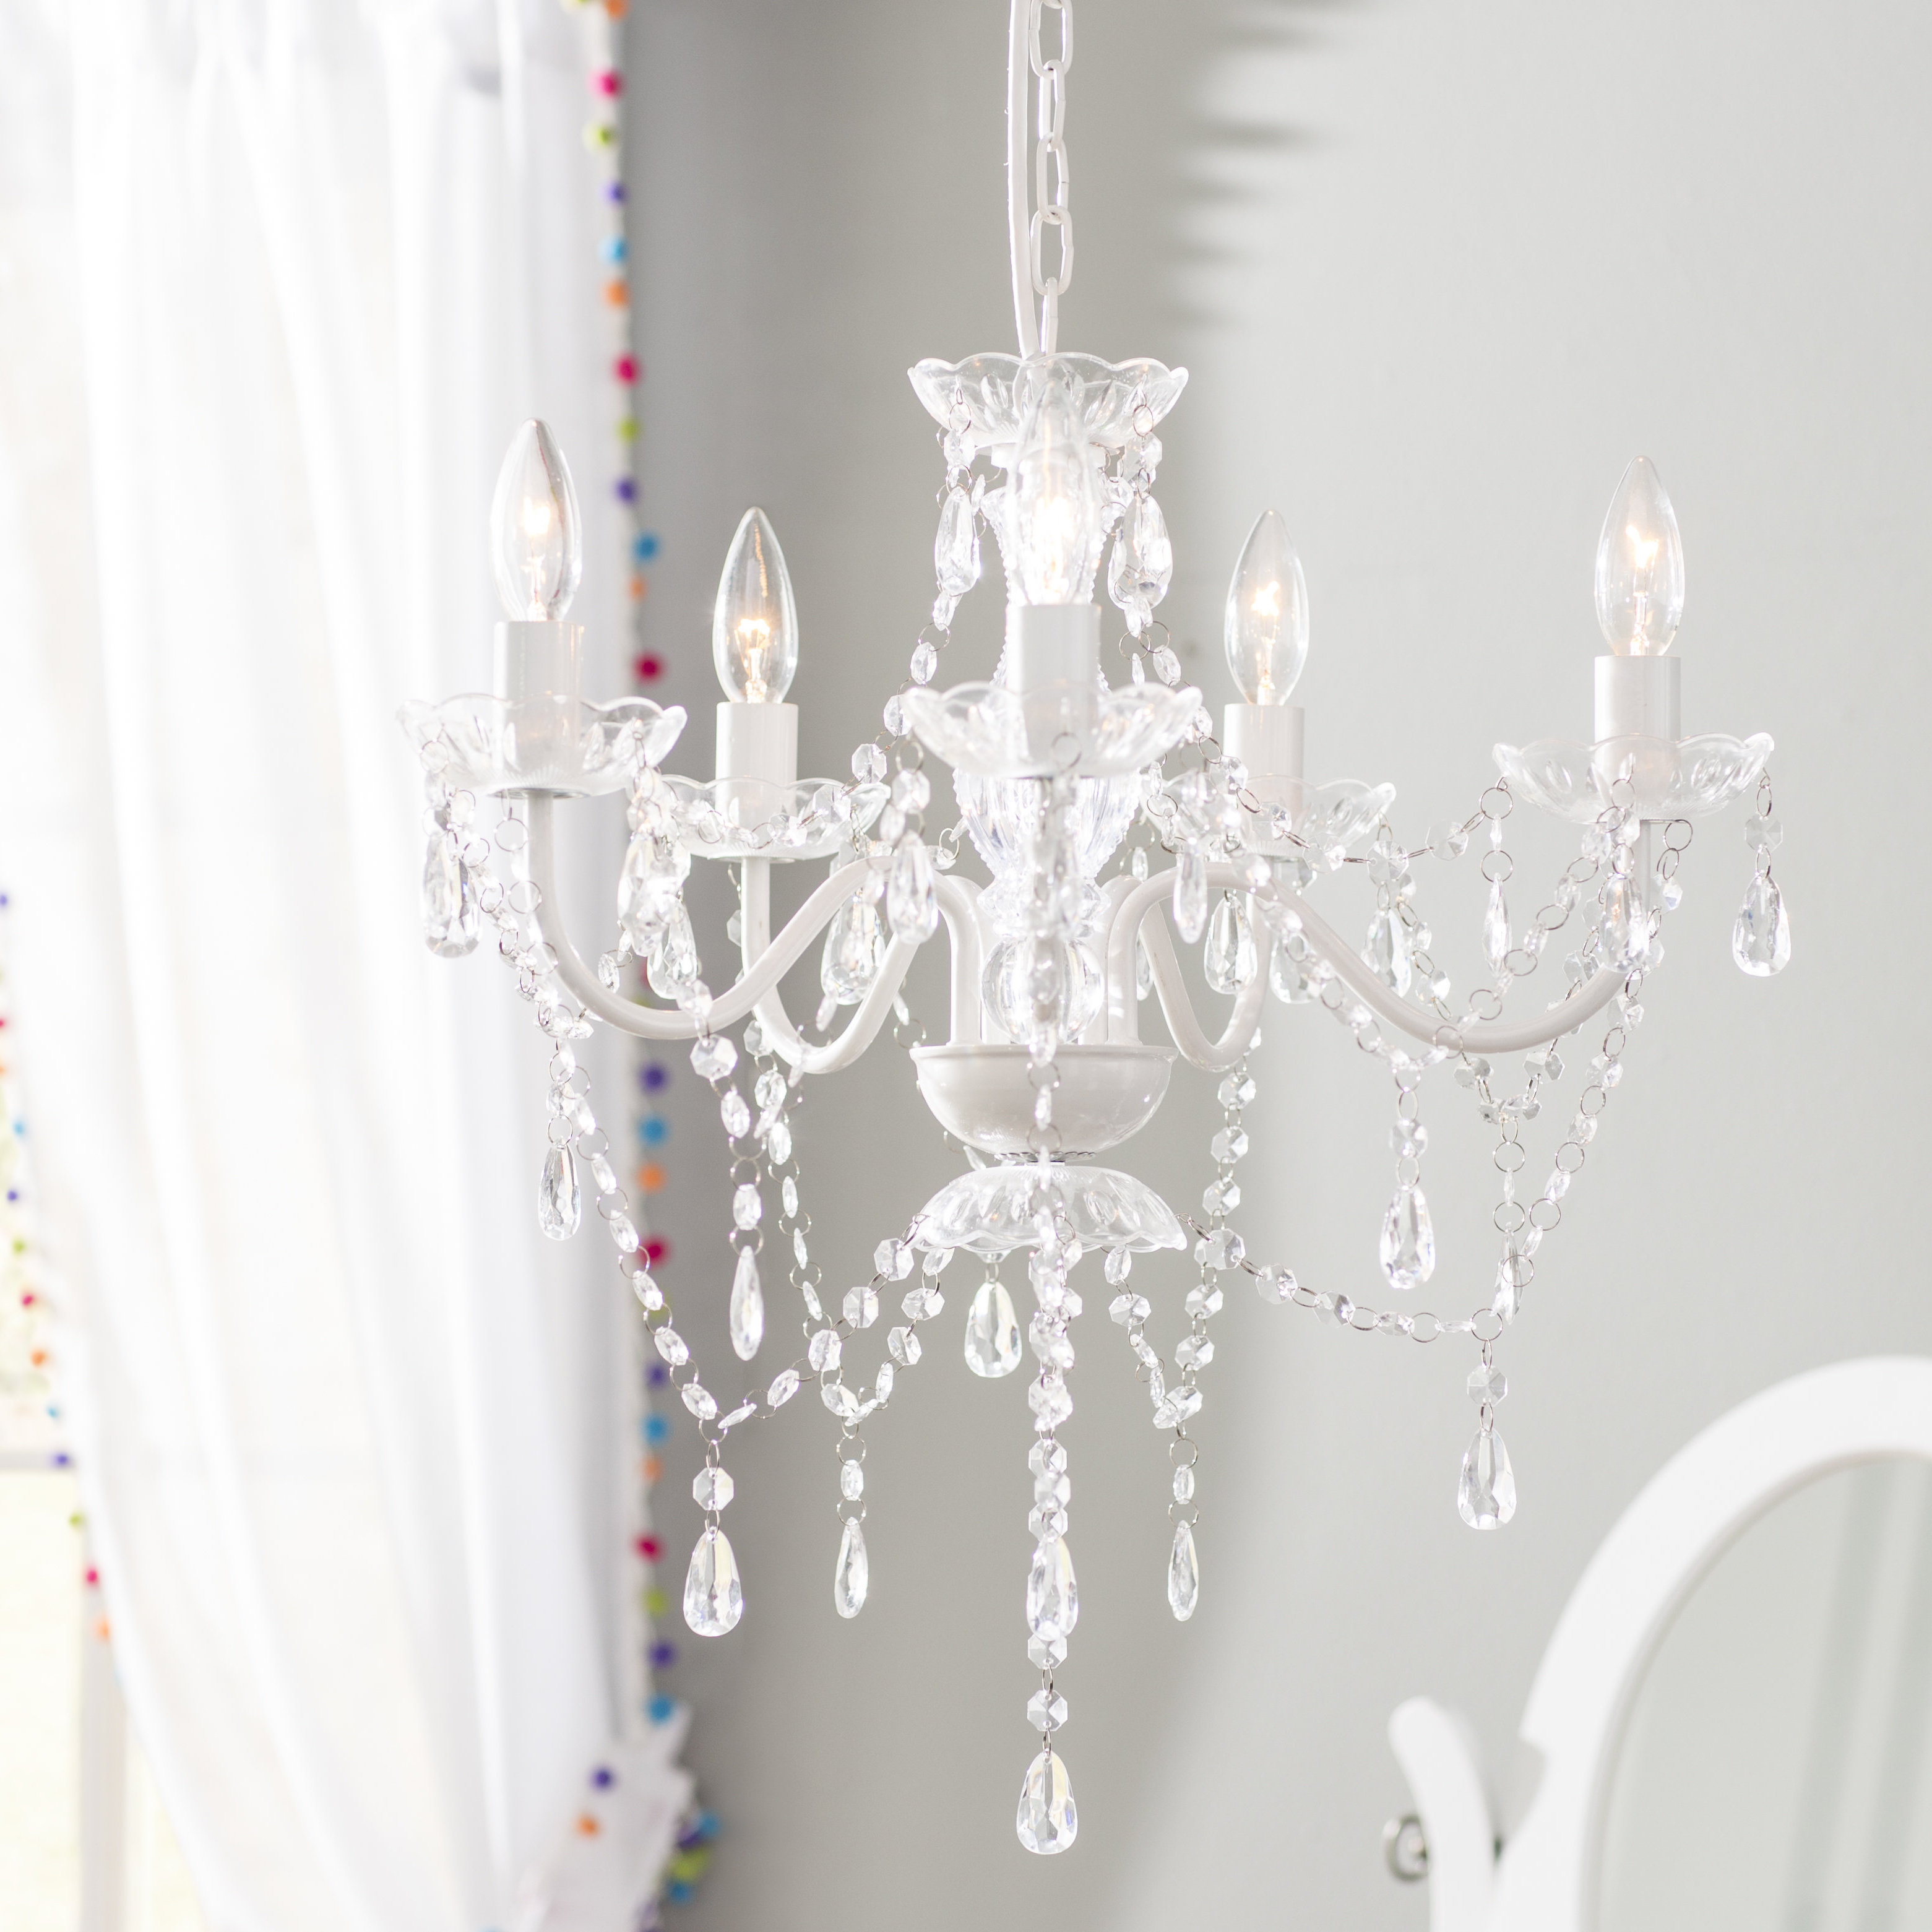 Famous Blanchette 5 Light Candle Style Chandeliers Inside Senoia 5 Light Candle Style Chandelier (Gallery 3 of 20)